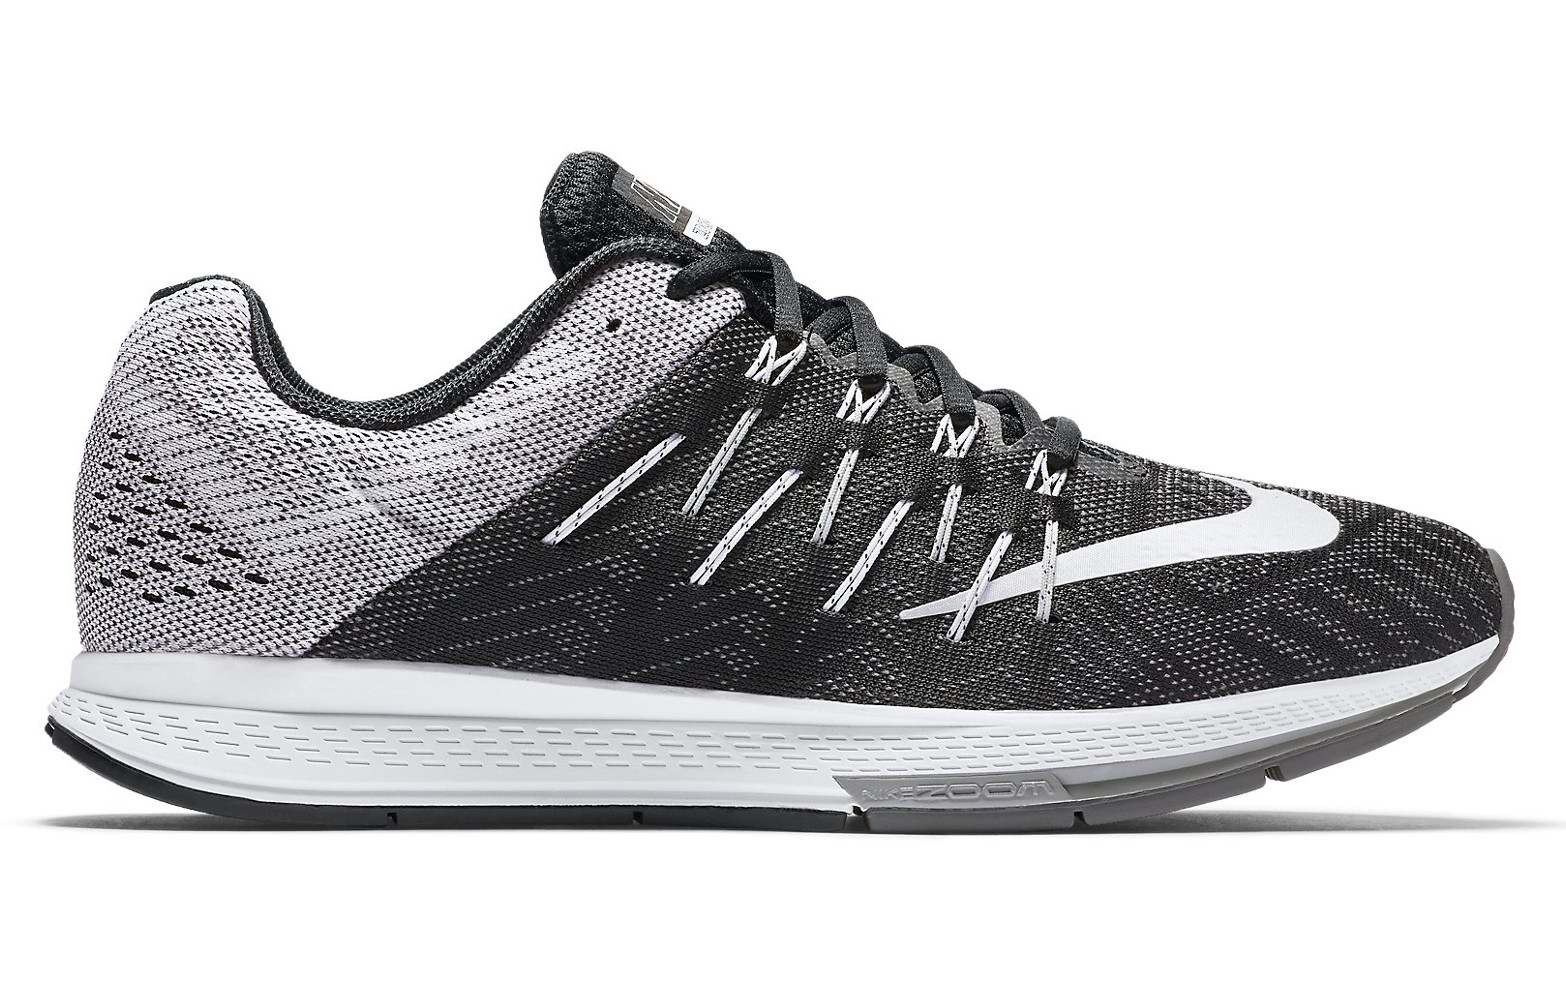 new product e8576 071f1 Chaussures de Running Nike AIR ZOOM ELITE 8 Noir